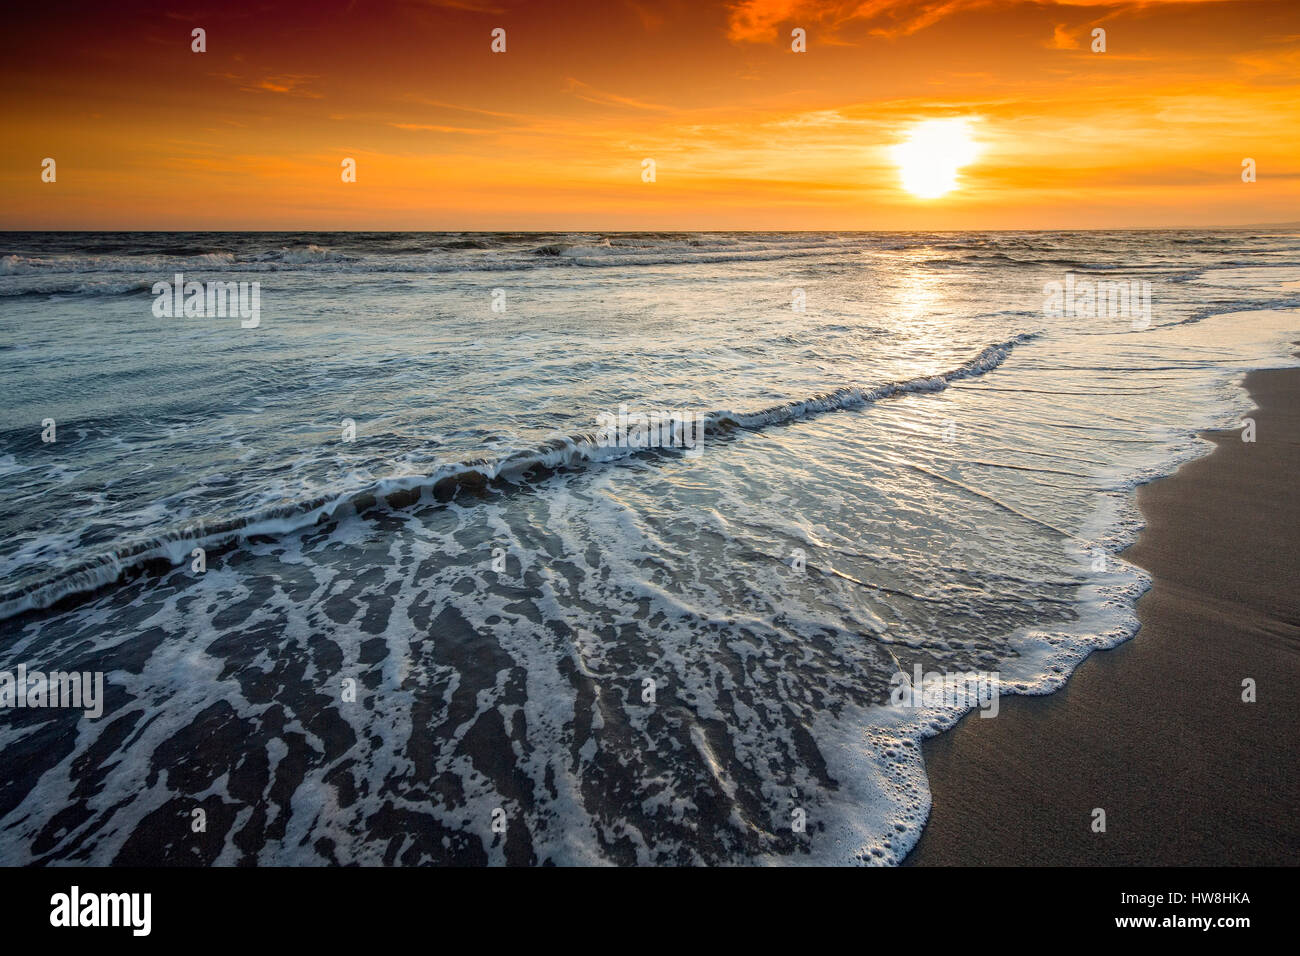 Beach at sunset, Marbella. Malaga province. Costa del Sol, Andalusia Southern Spain.Europe - Stock Image